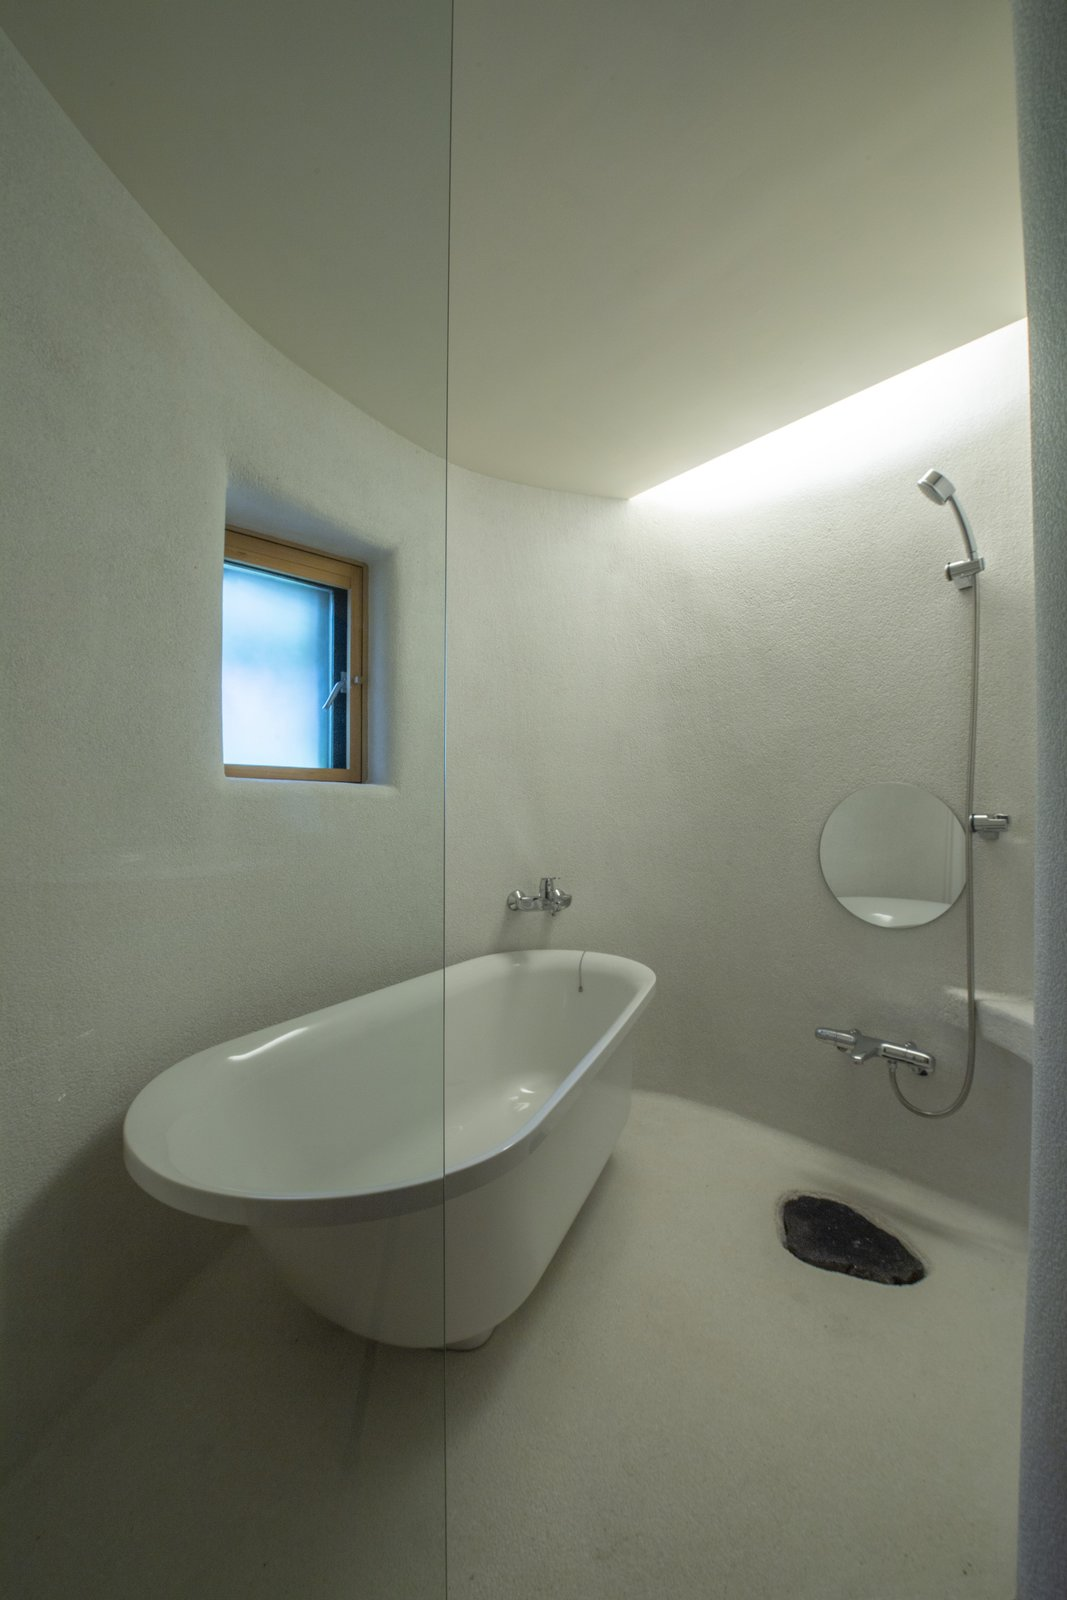 Bathroom of Shell House by Tono Mirai Architects.